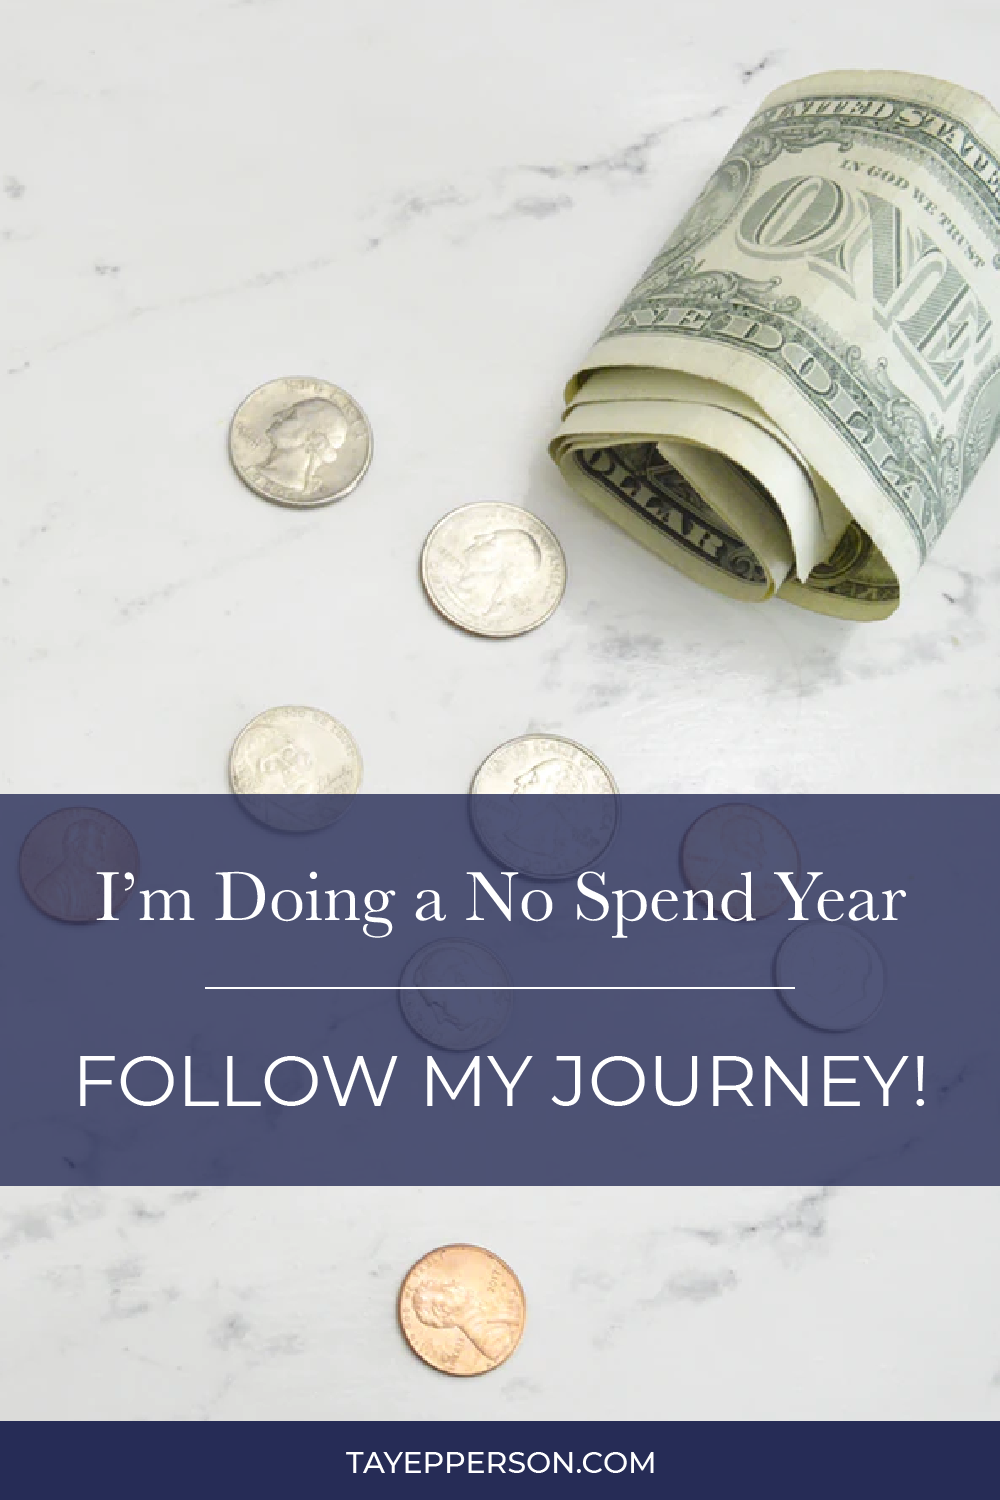 I'm having a spend free year!